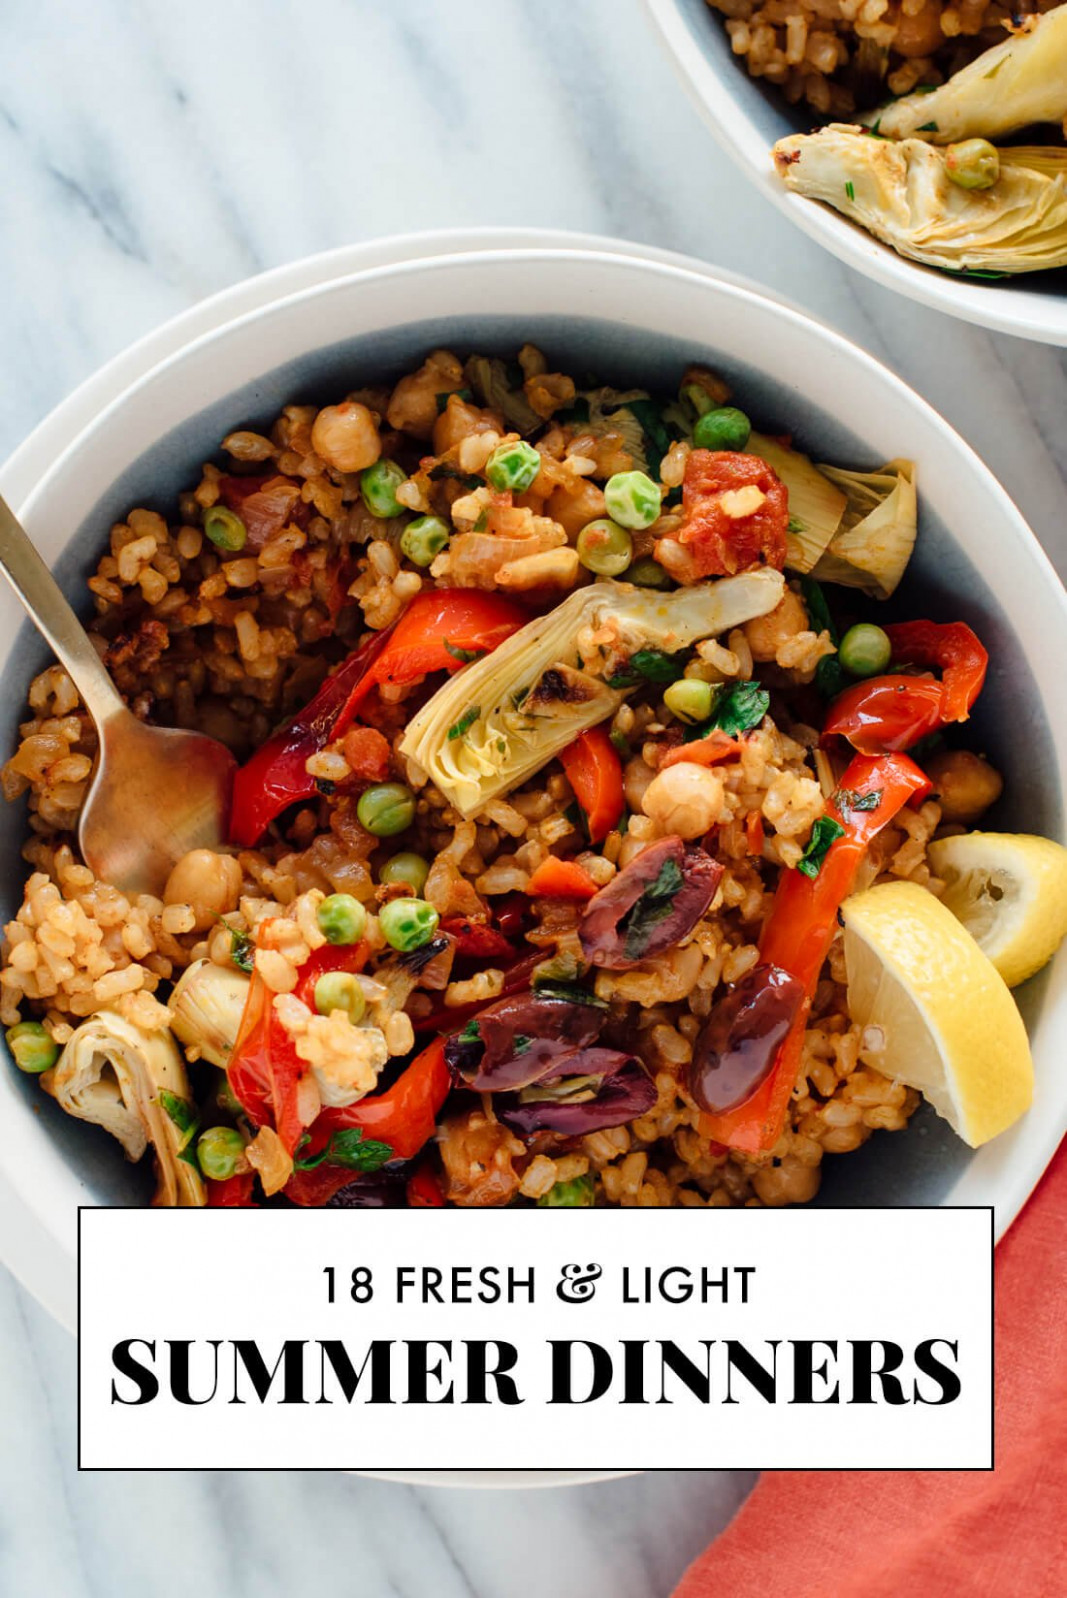 13 Light Summer Dinner Recipes - Cookie And Kate - Healthy Summer Recipes Dinner